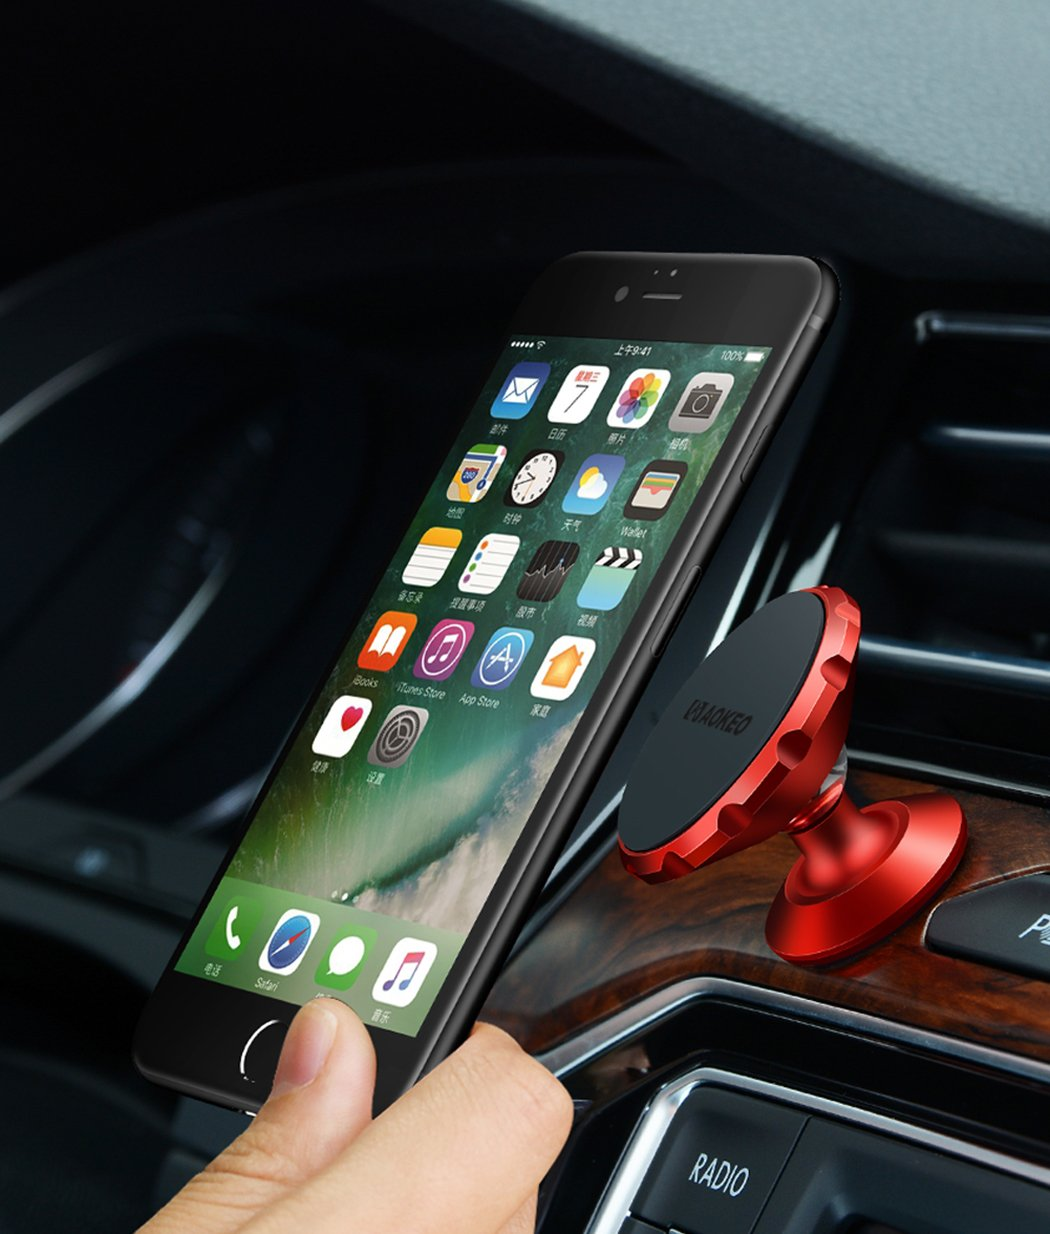 Car Phone Mount Samsung Galaxy S5//S6//S7//S8 4352727753 Aokeo Universal 360/° Rotational Magnetic Phone Holder: Universal Cradle Stand Holder for iPhone 8//X//7//7 Plus//6s//6 Plus//5s Huawei Rose Gold Metal